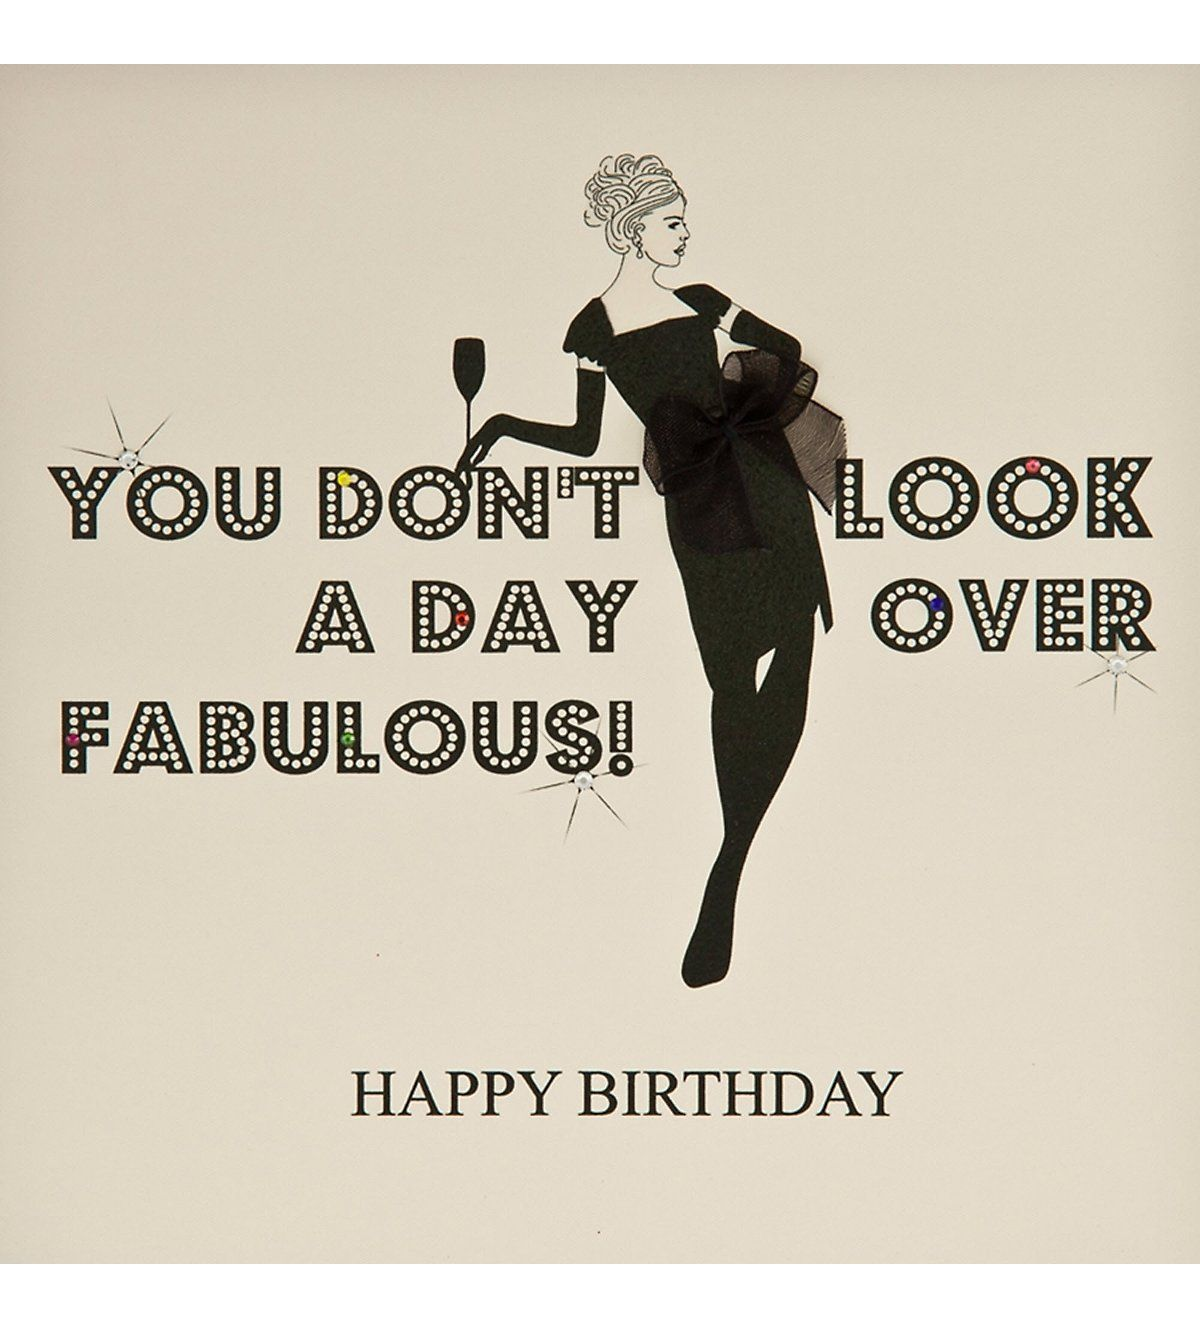 Behind the chair ecards - Five Dollar Shake You Don T Look A Day Over Fabulous Birthday Card